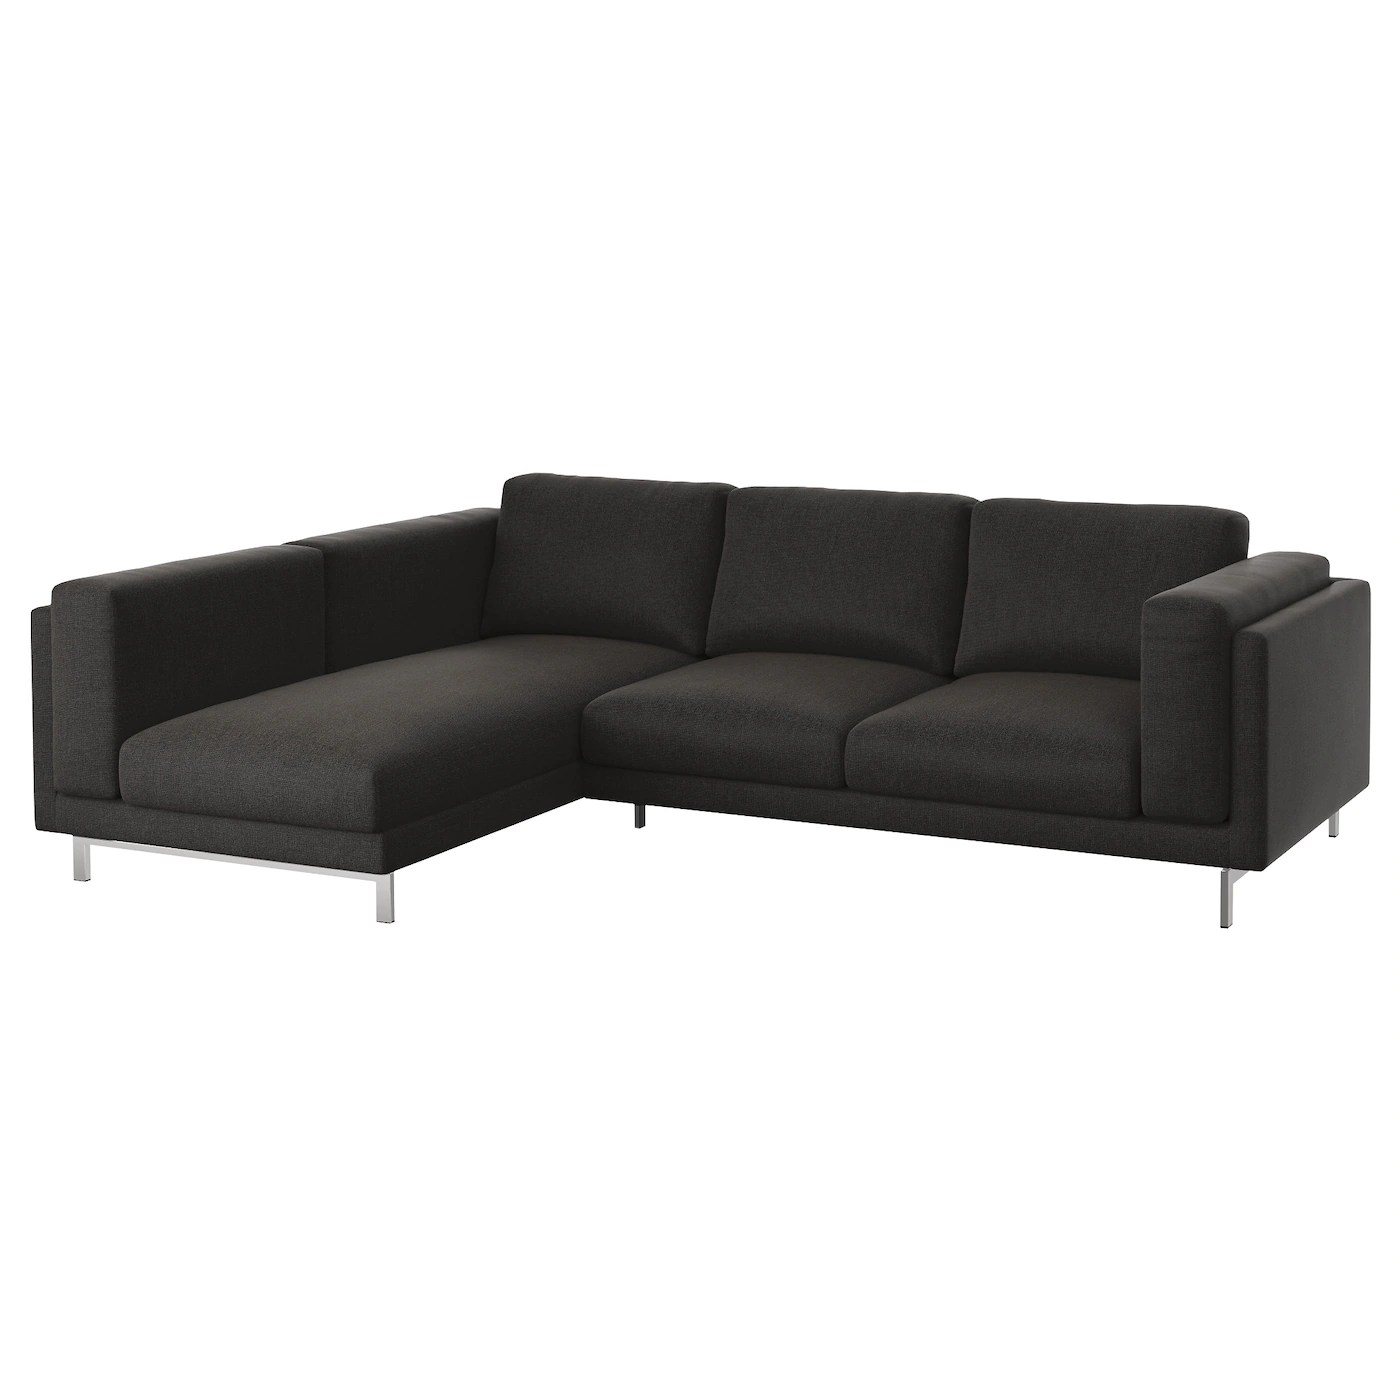 Ikea Sofa Nockeby Test Nockeby Two Seat Sofa W Chaise Longue Left Tenö Dark Grey